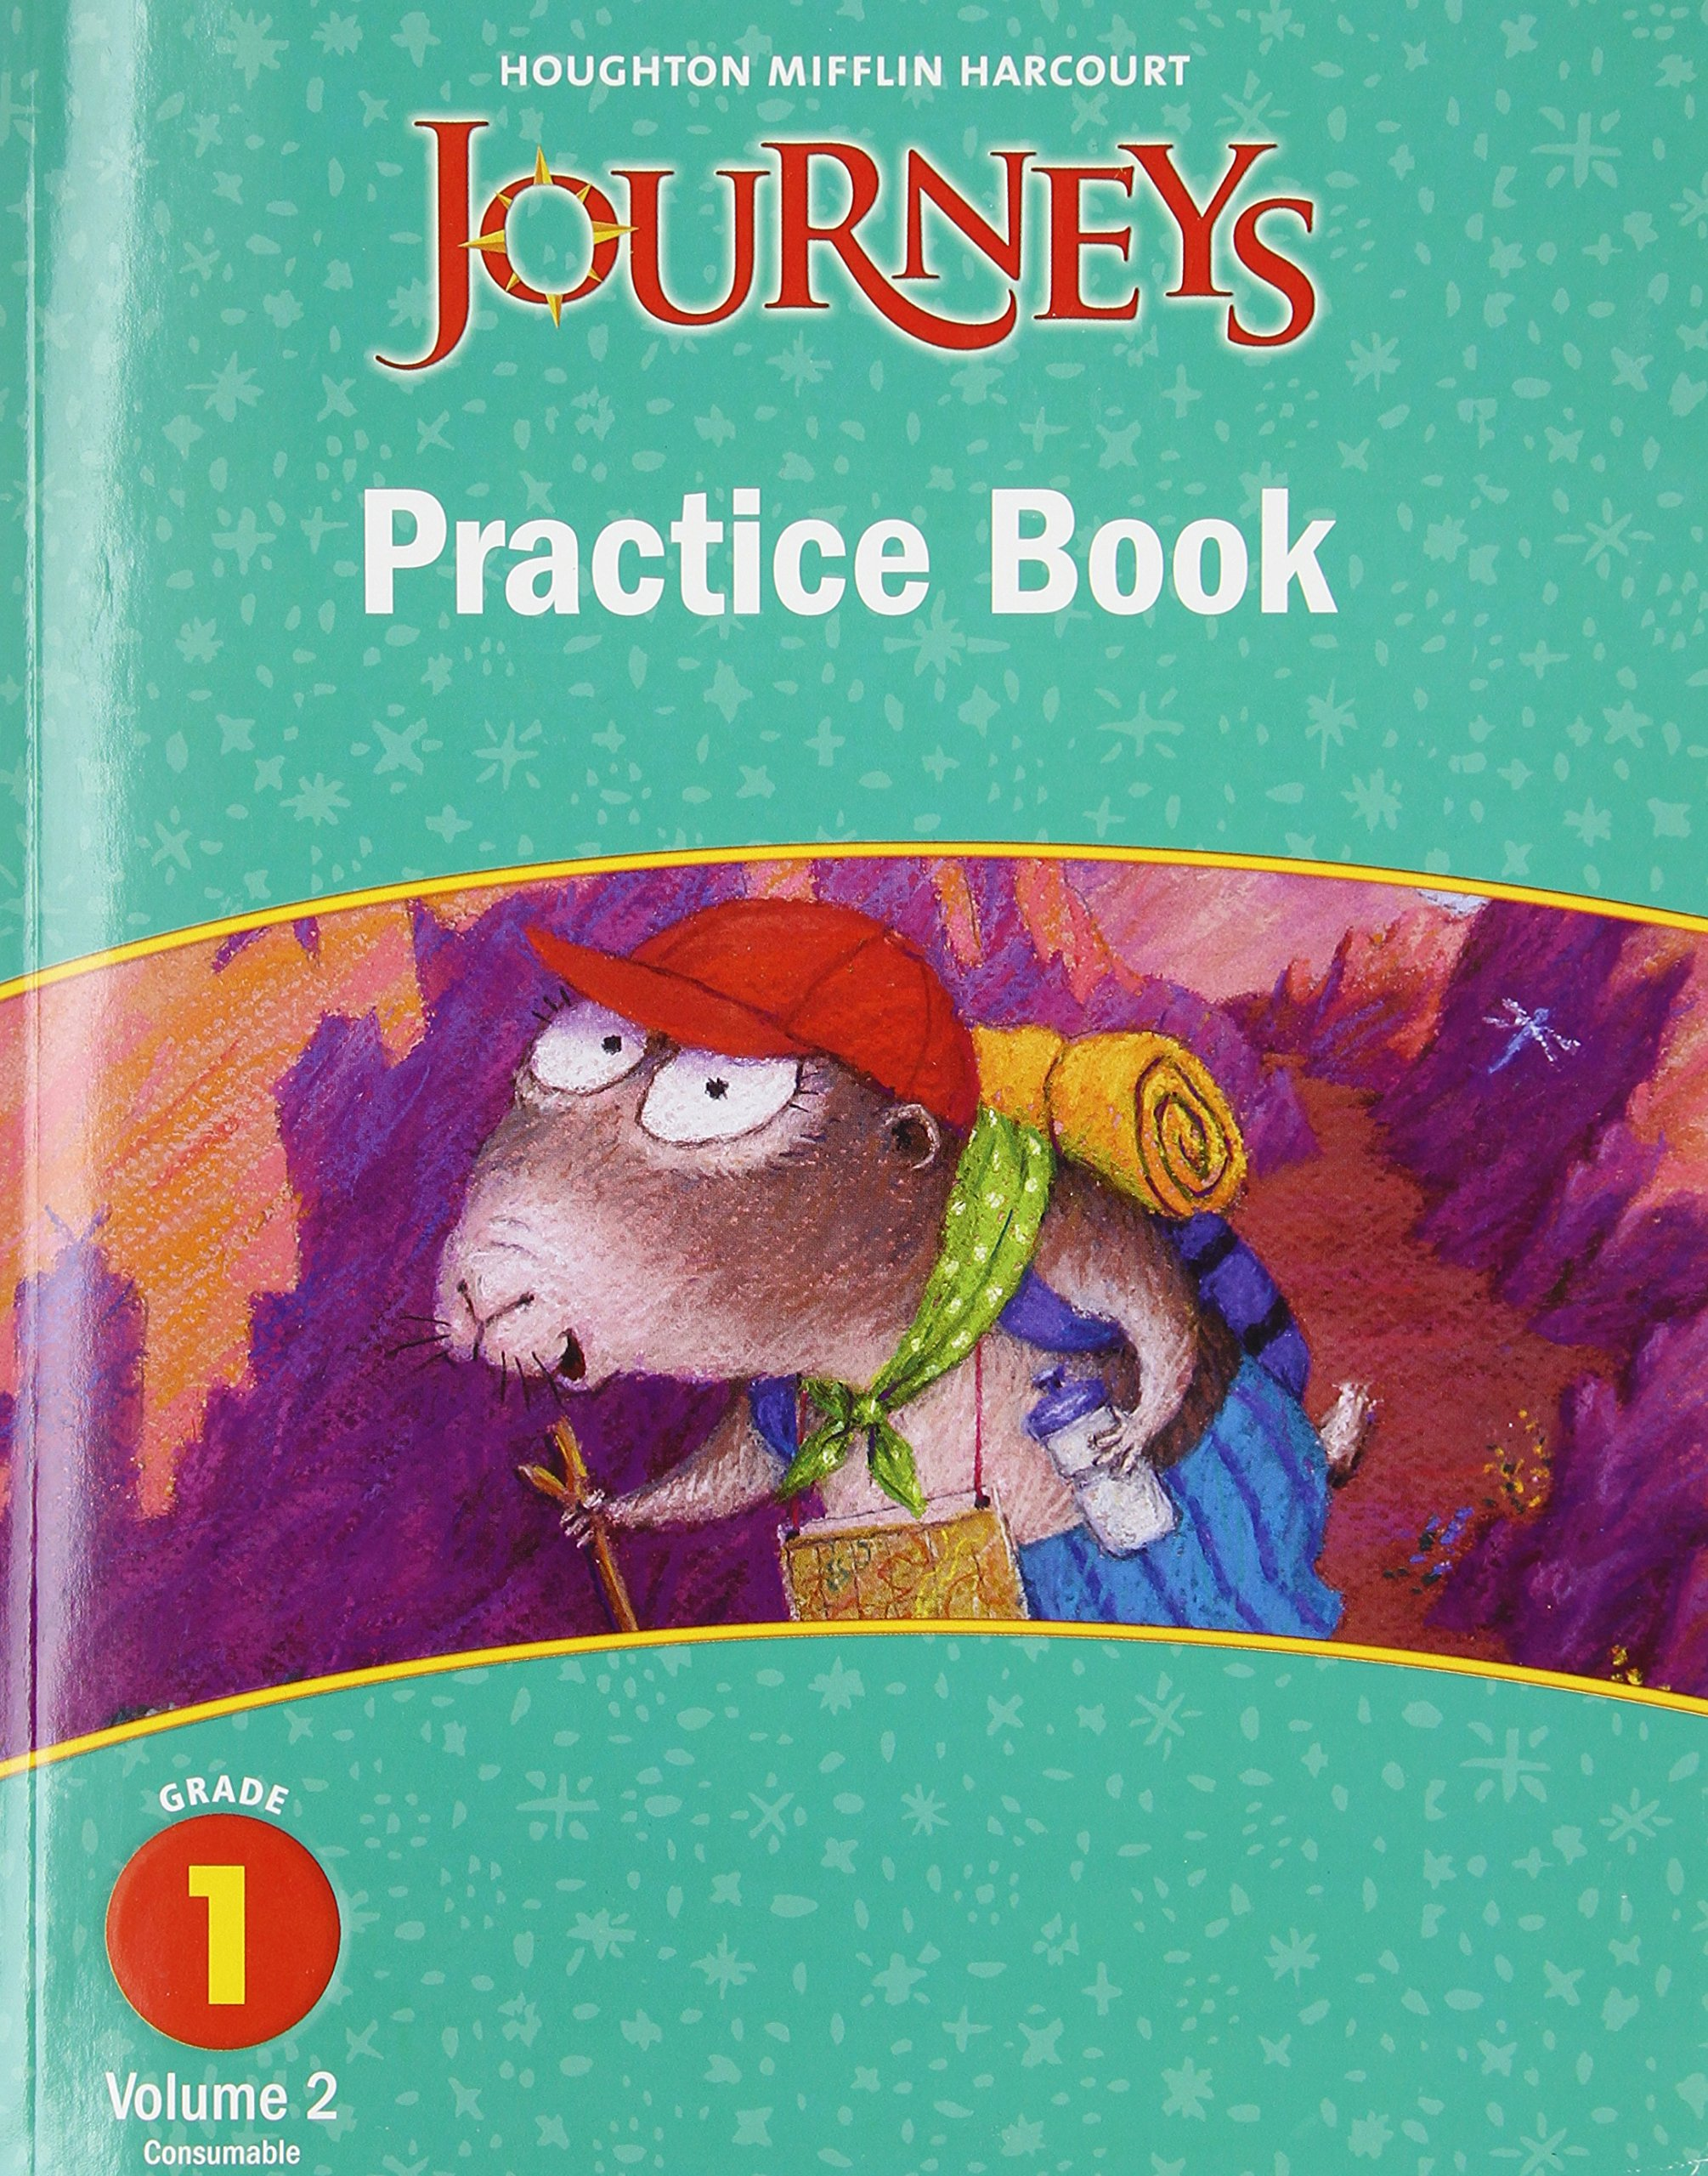 Journeys Practice Book Grade 1: Houghton Mifflin Harcourt ...